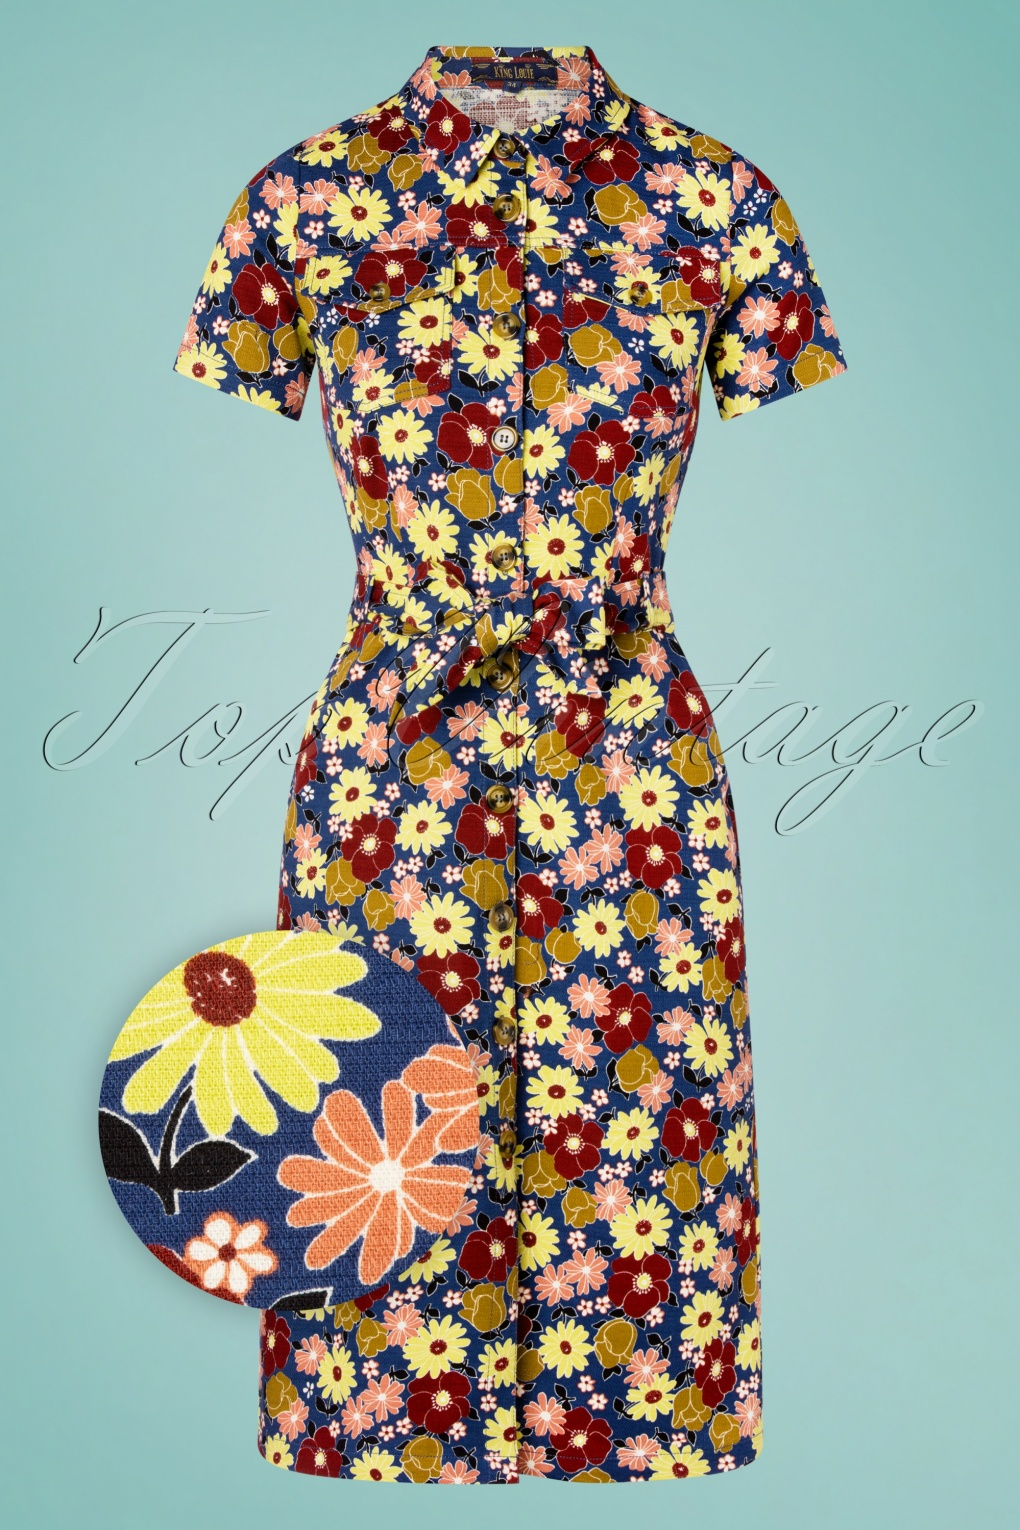 60s Dresses | 1960s Dresses Mod, Mini, Hippie 70s Katy Fortuna Dress in Bluestone Blue £19.95 AT vintagedancer.com